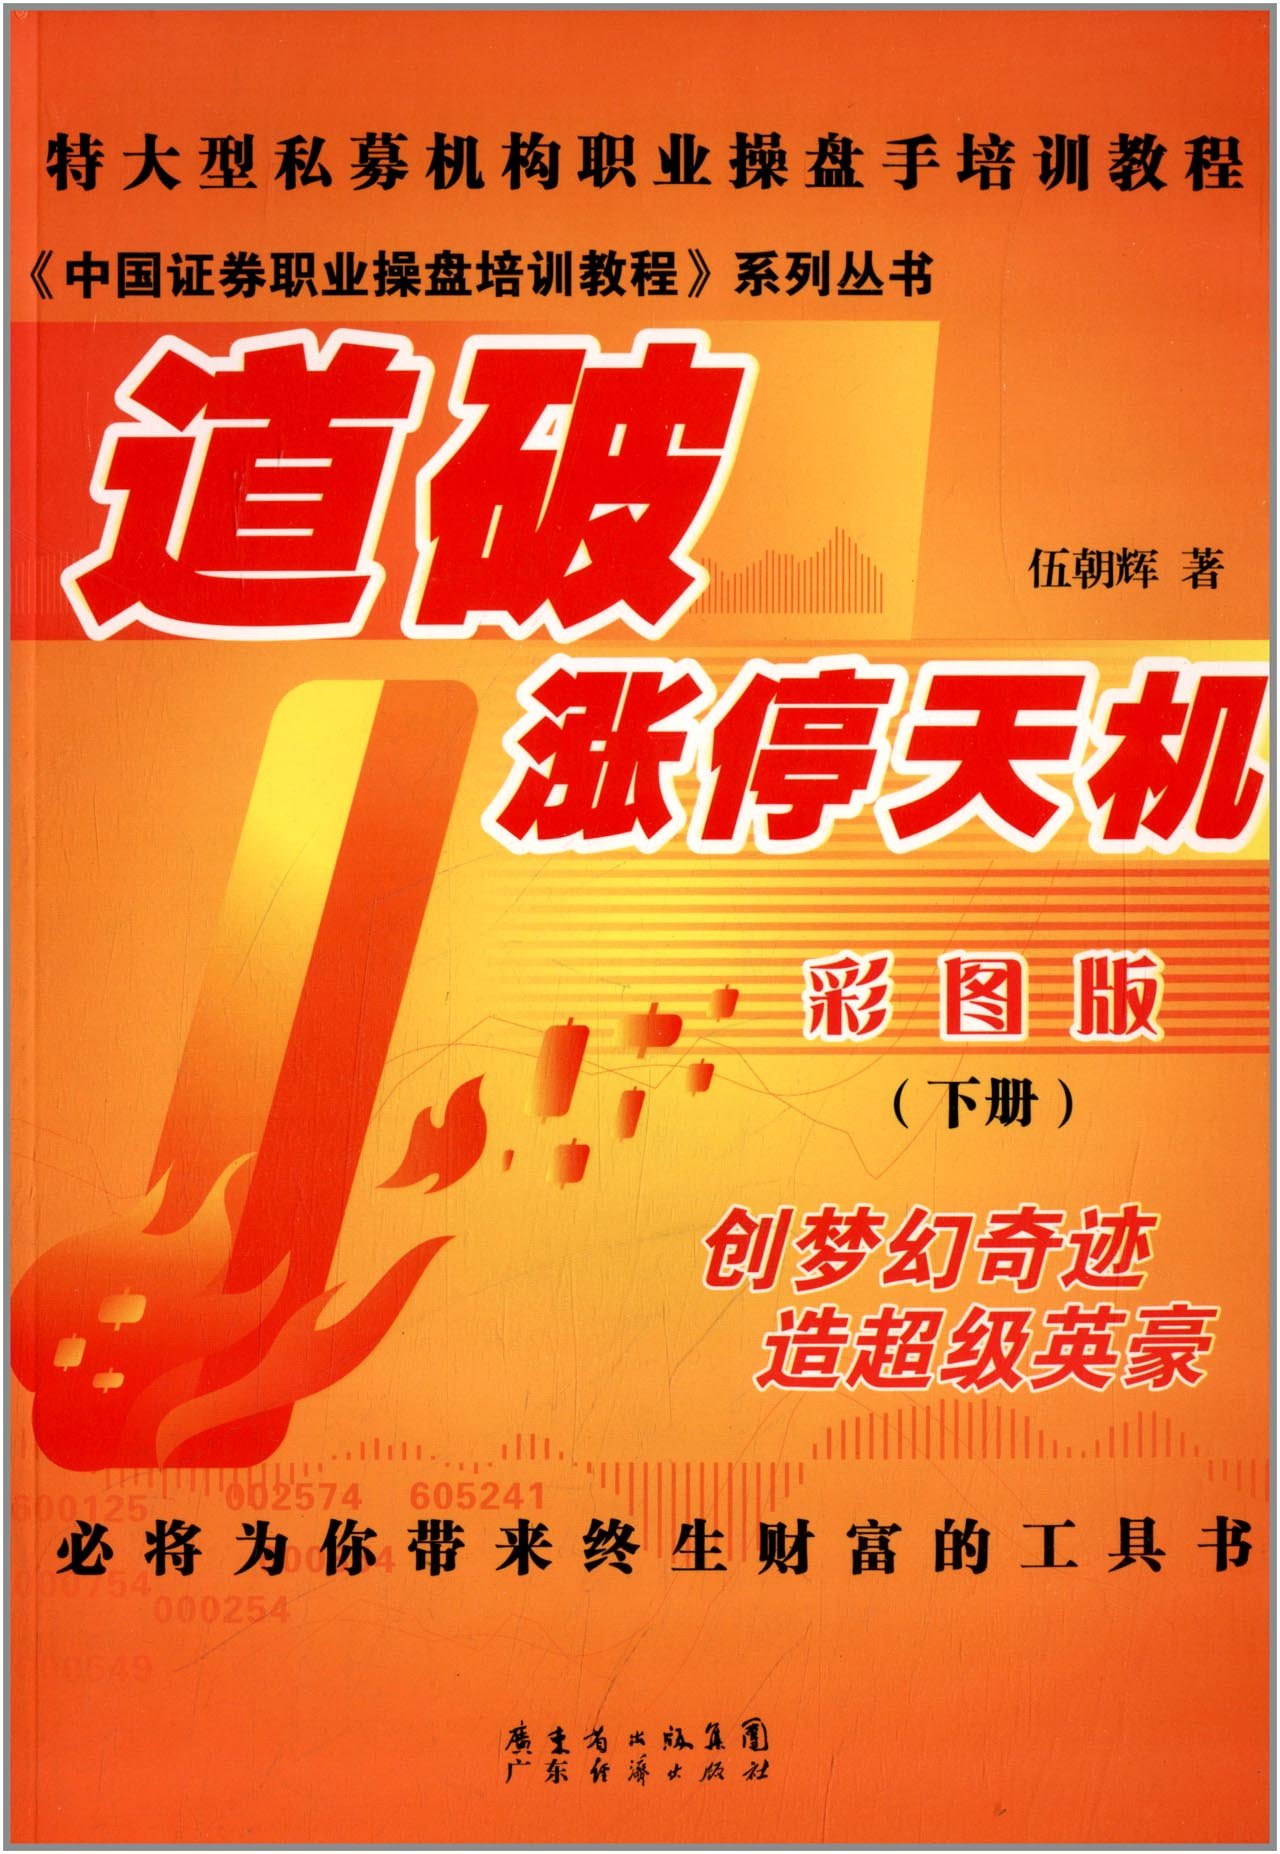 Download China Securities professional training training series of books: Road, the limit of the secret (color version) (the next volume) pdf epub